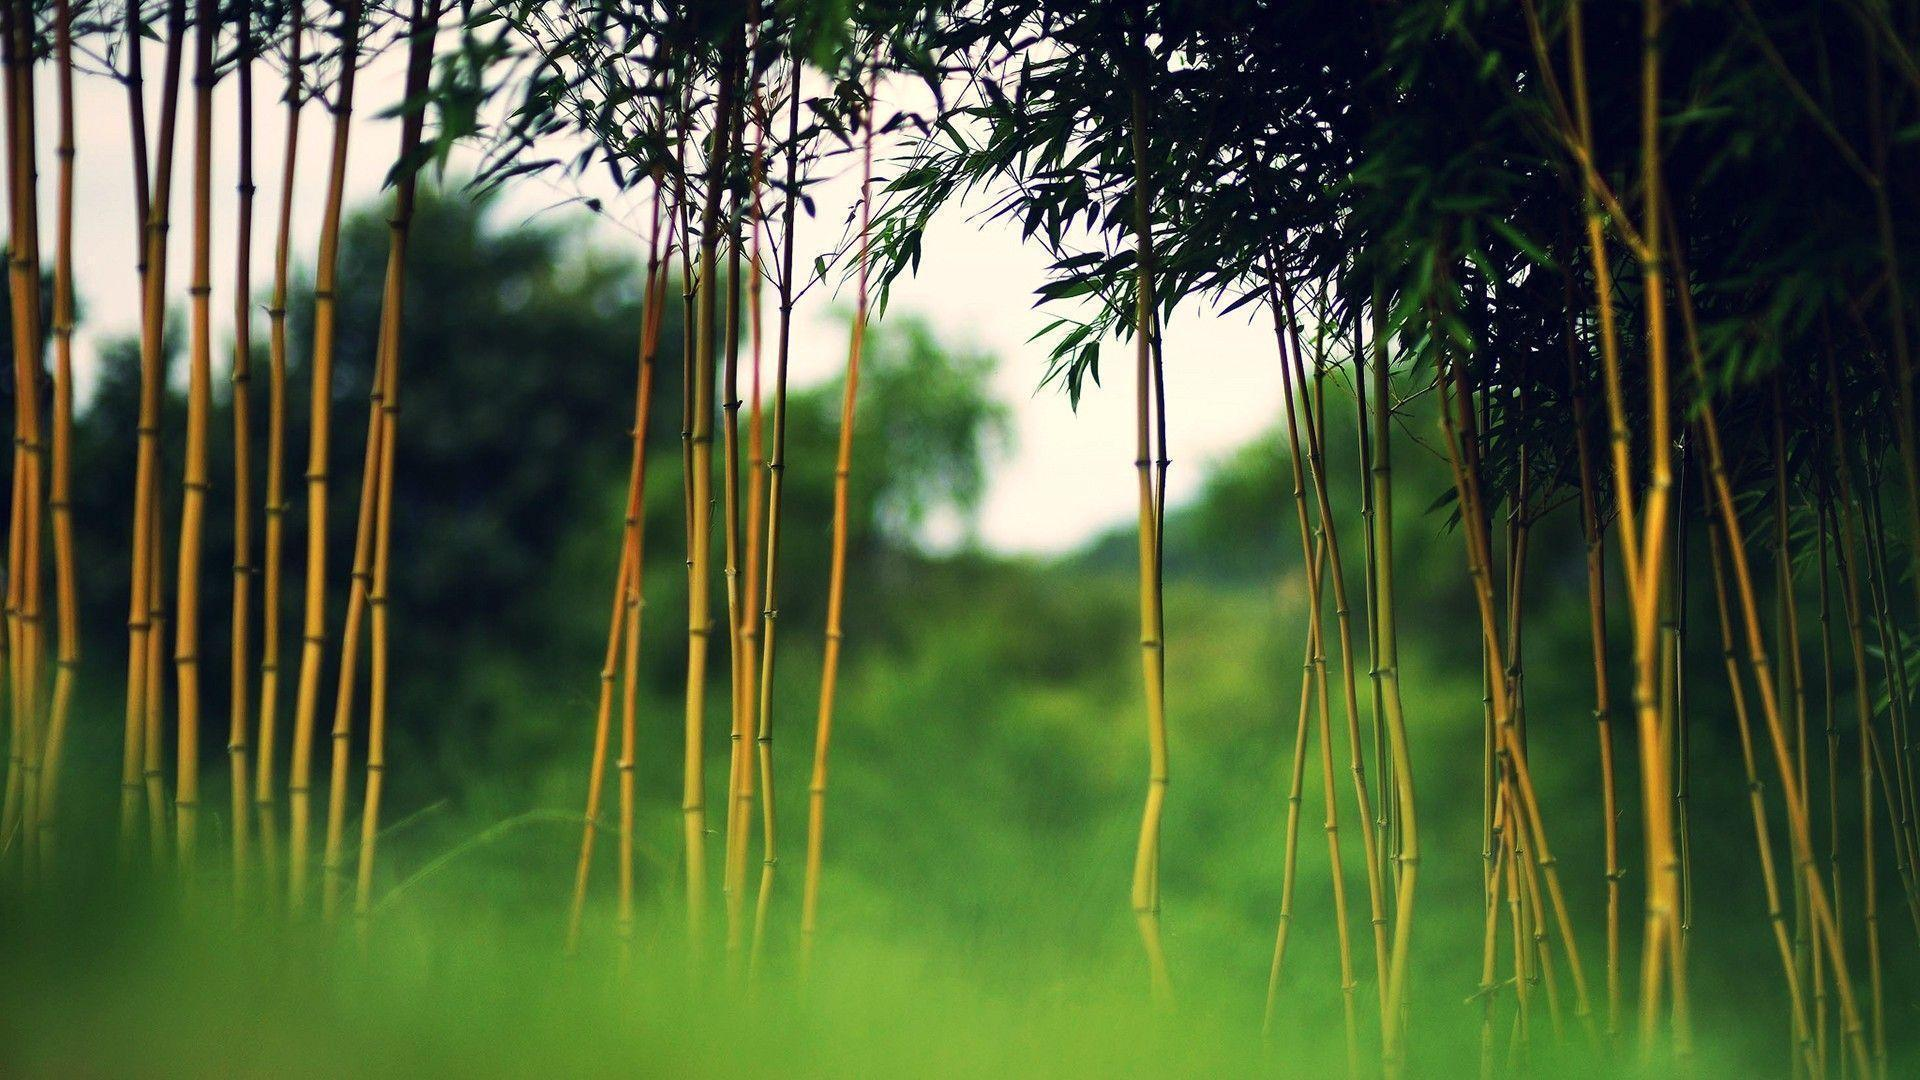 bamboo wallpaper by doantrangnguyen - photo #6